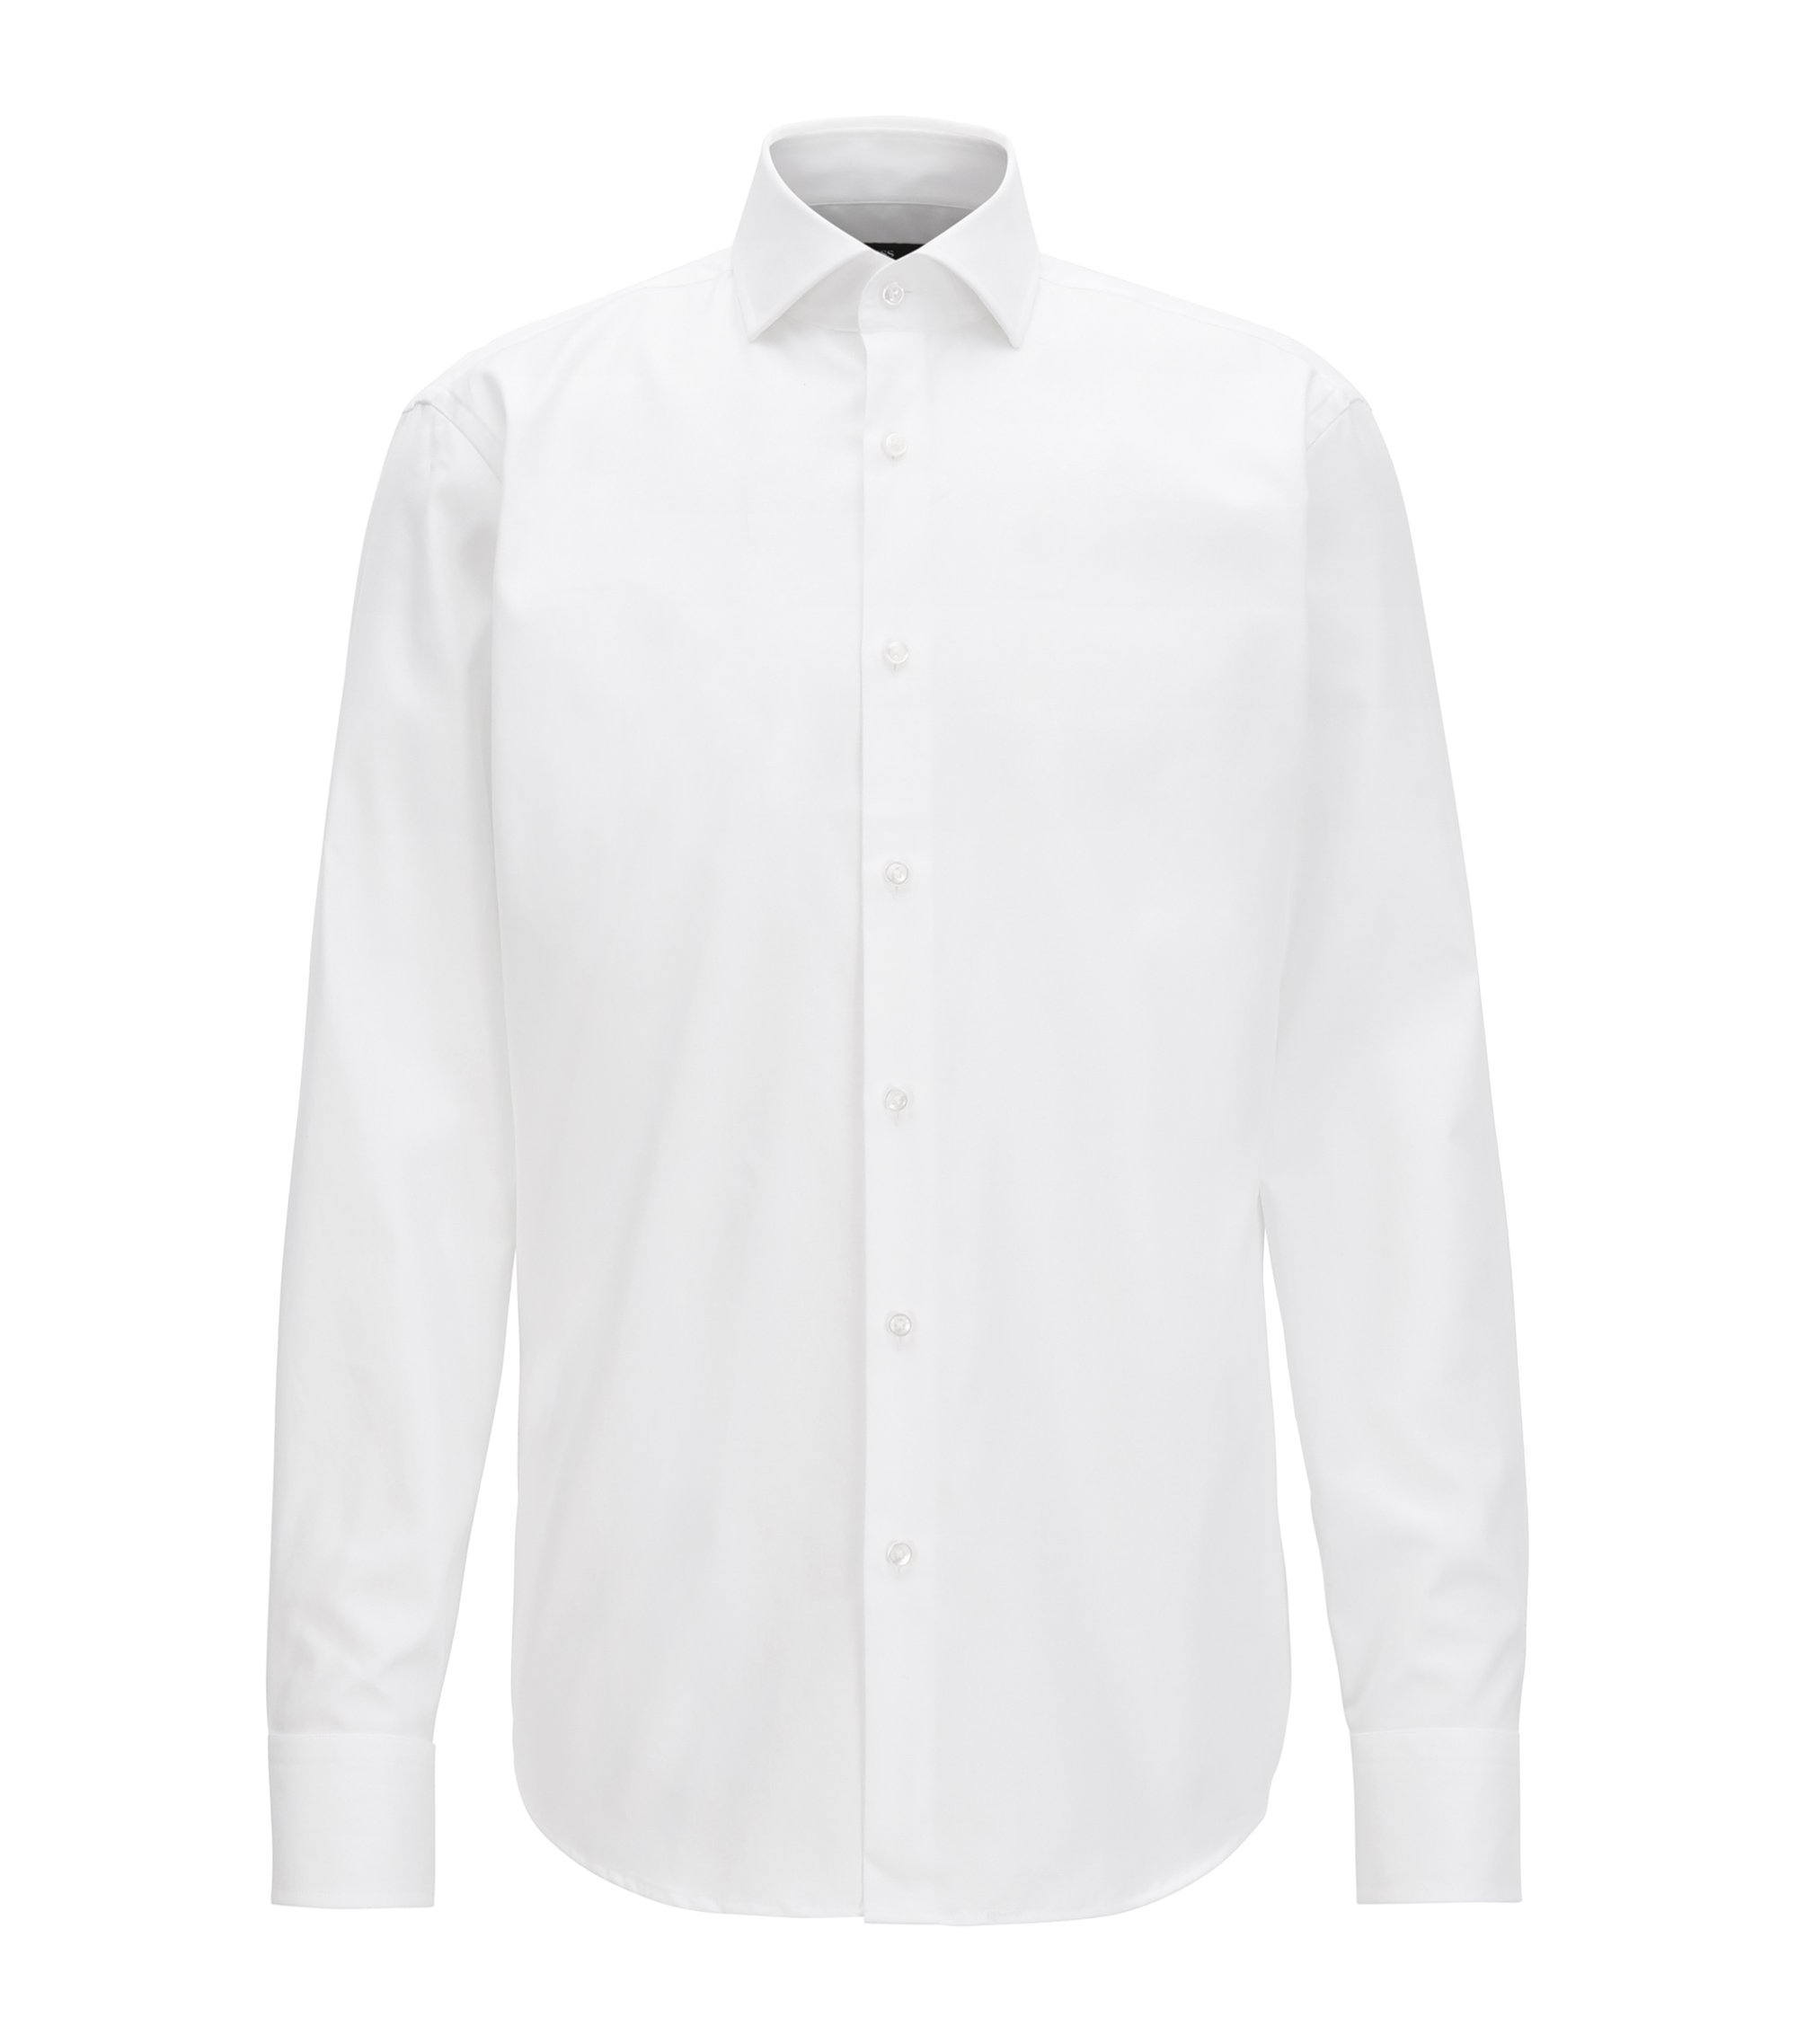 Camicia regular fit in twill di cotone tinto in filo, Bianco